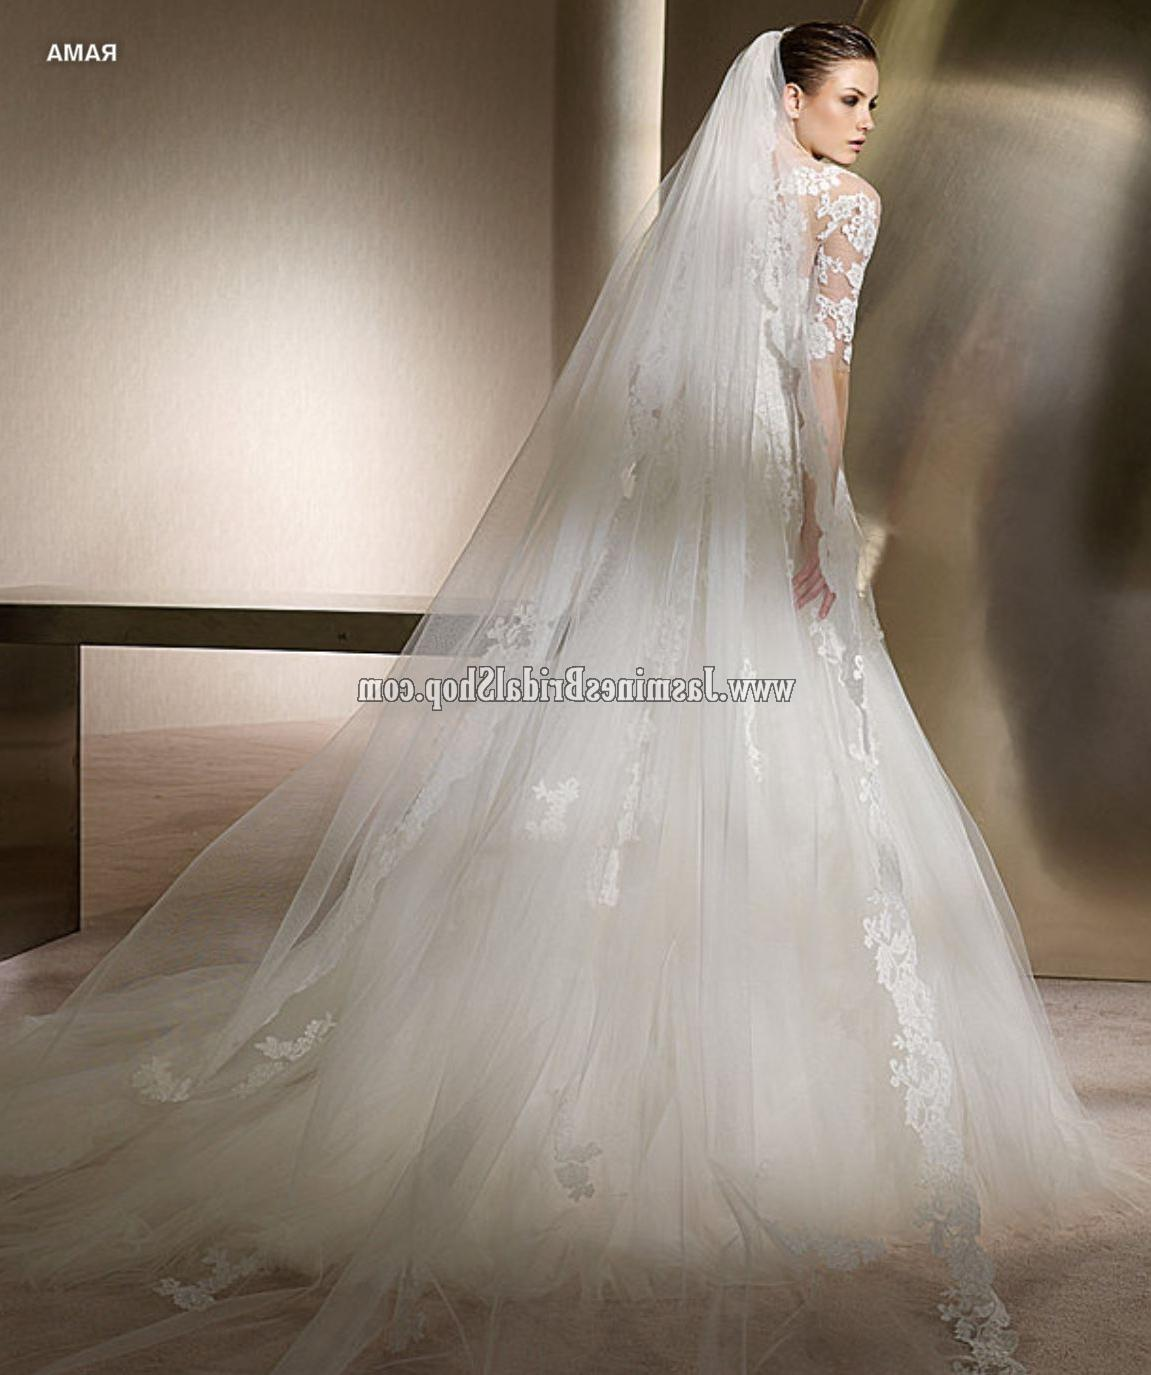 clara wedding dresses 2012